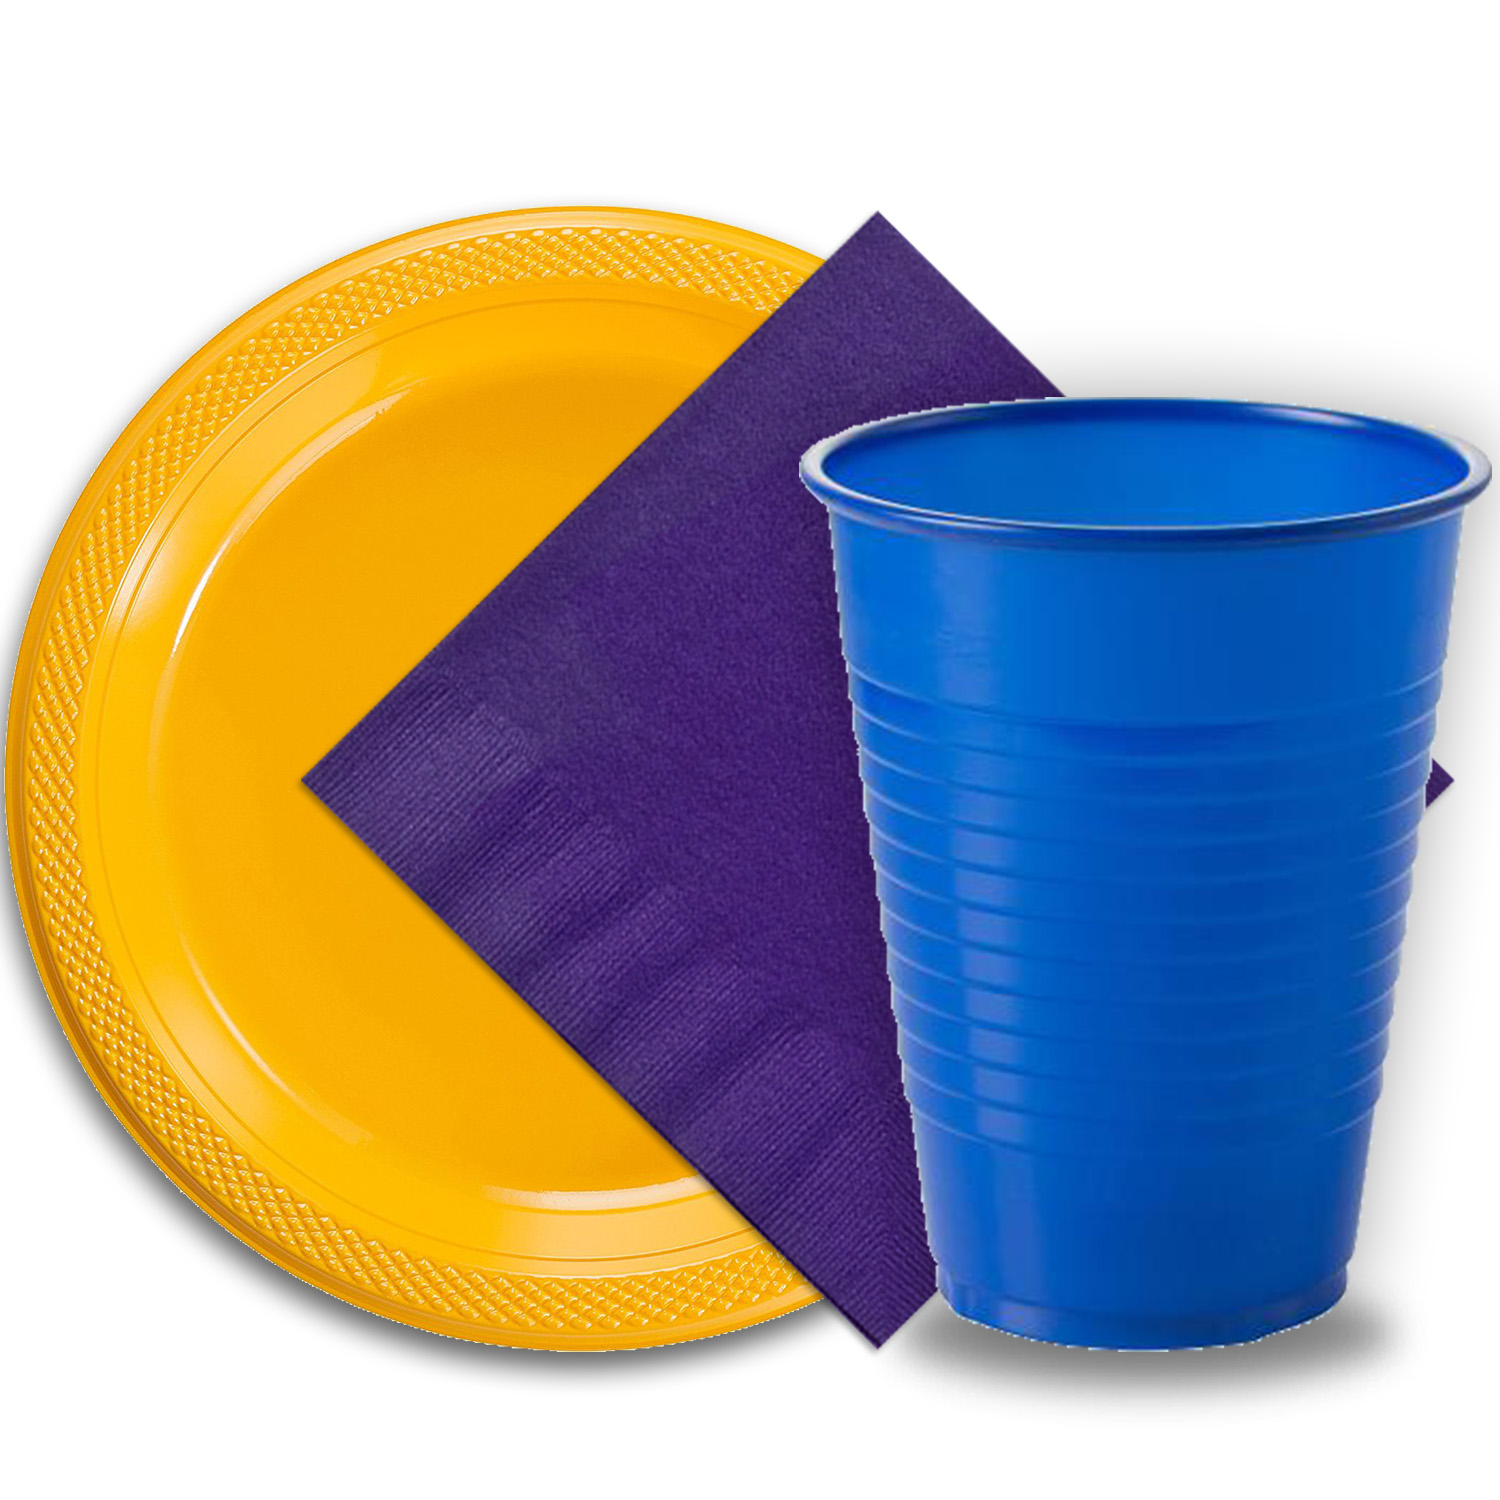 "50 Yellow Plastic Plates (9""), 50 Dark Blue Plastic Cups (12 oz.), and 50 Purple Paper Napkins, Dazzelling Colored Disposable Party Supplies Tableware Set for Fifty Guests."